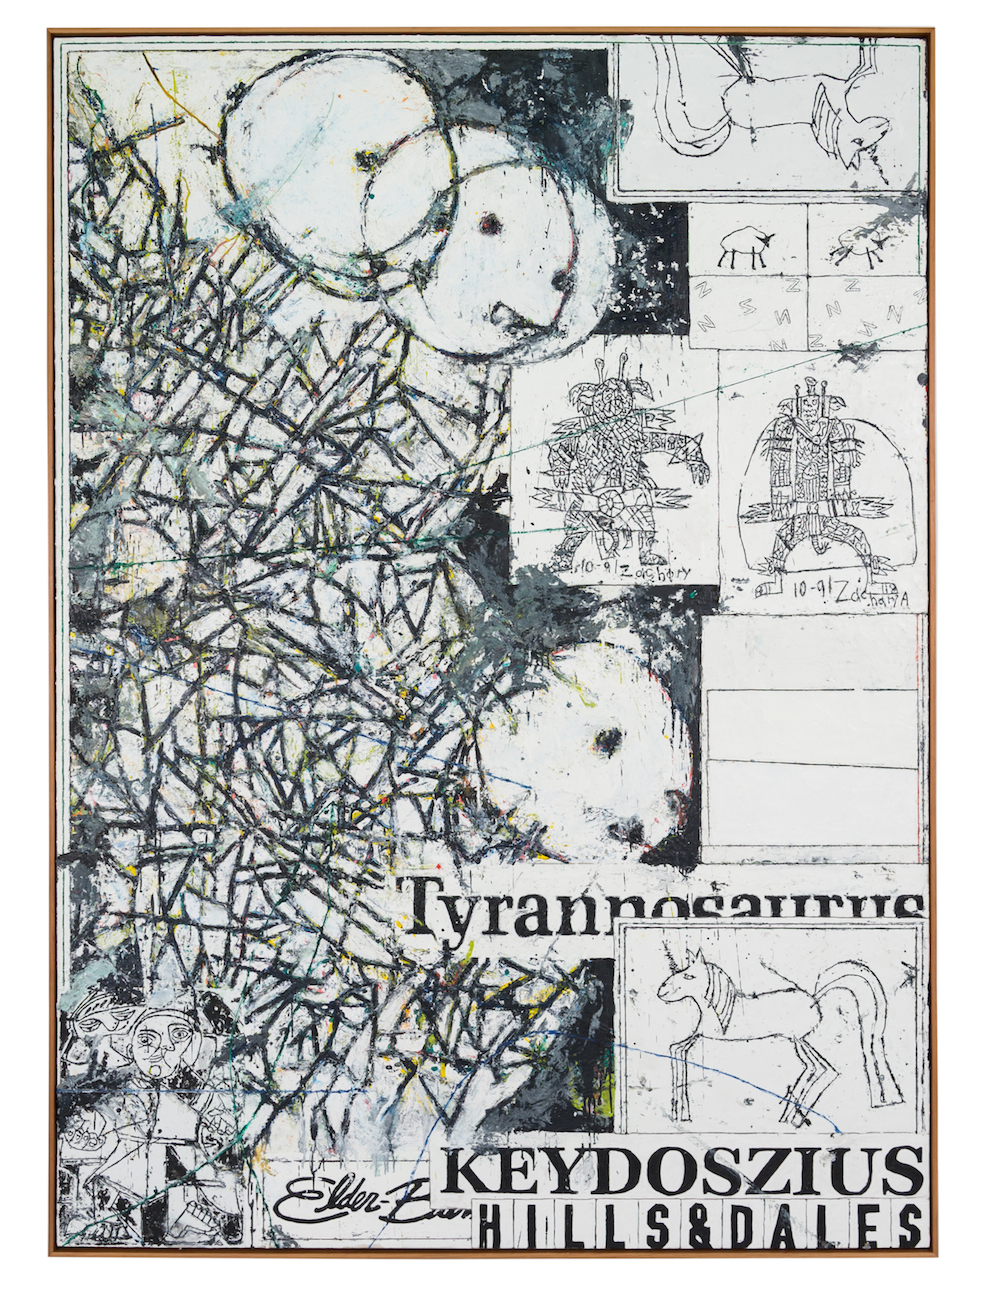 Keydoszius black and white, 2016. Oil and encaustic on canvas in artist's frame, 84 x 60 inches. Courtesy of the artist and Feuer/Mesler.